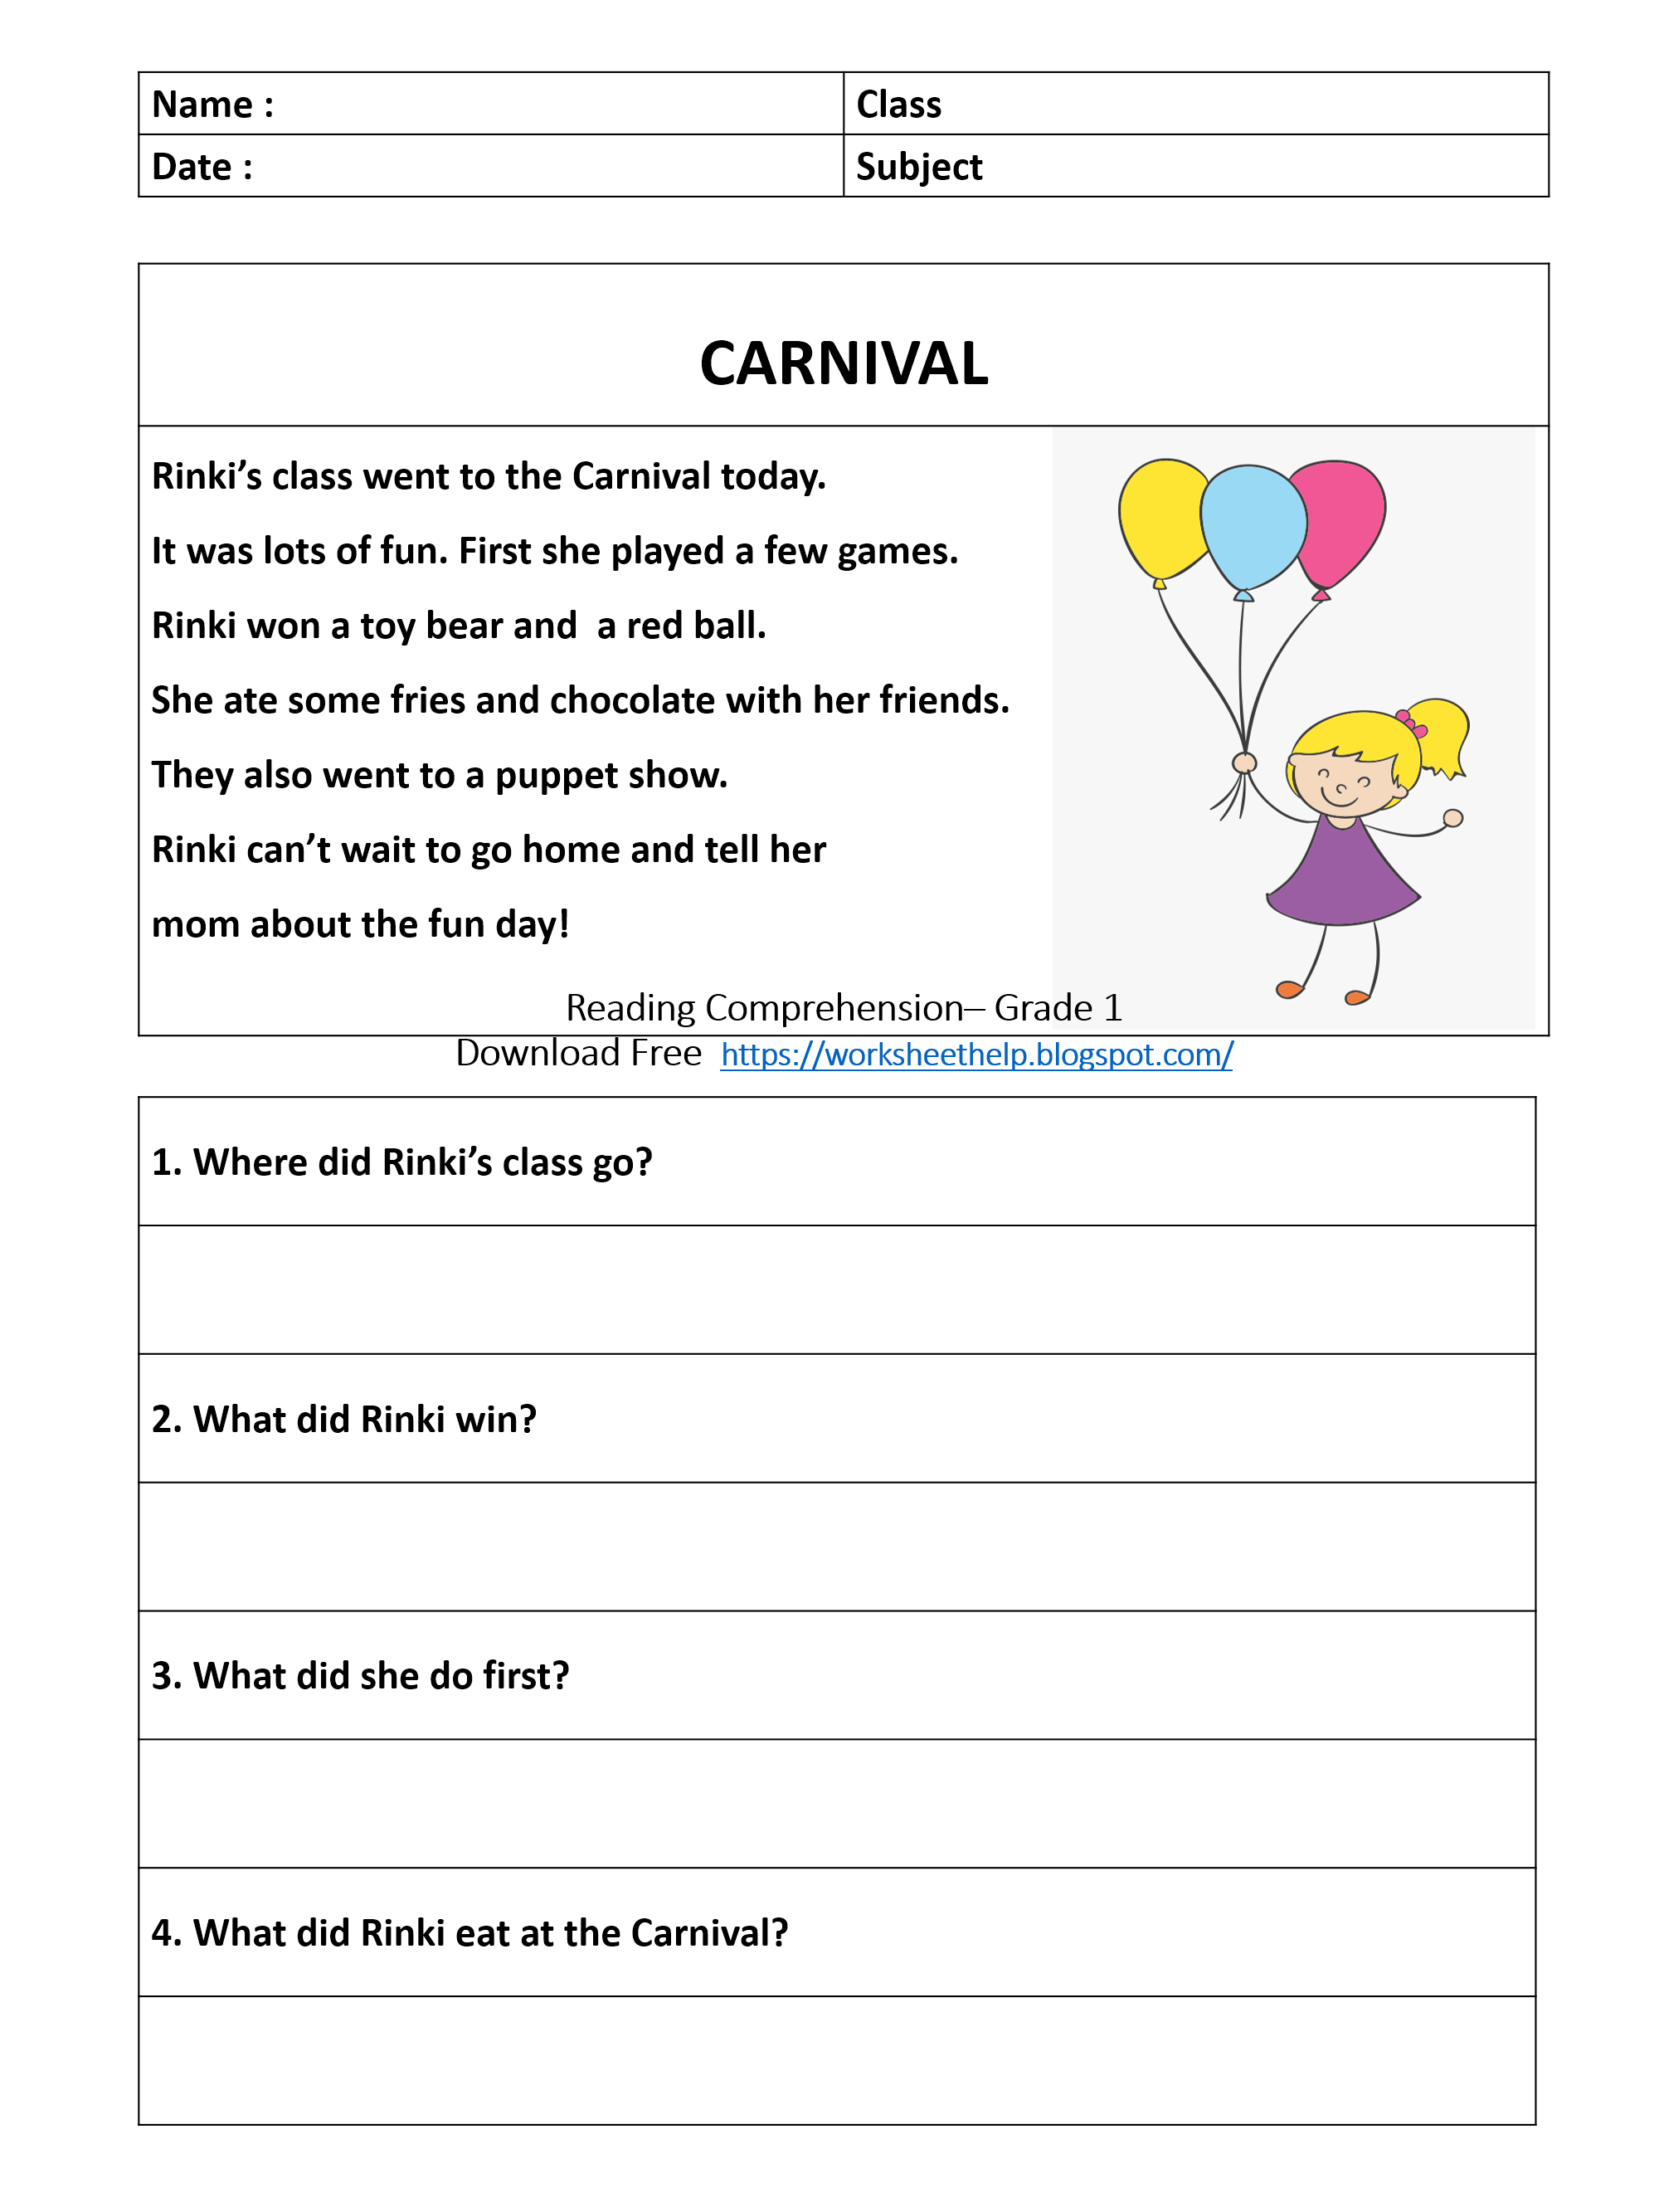 small resolution of Reading Comprehension Worksheet - Grade 1 - Carnival   Comprehension  worksheets